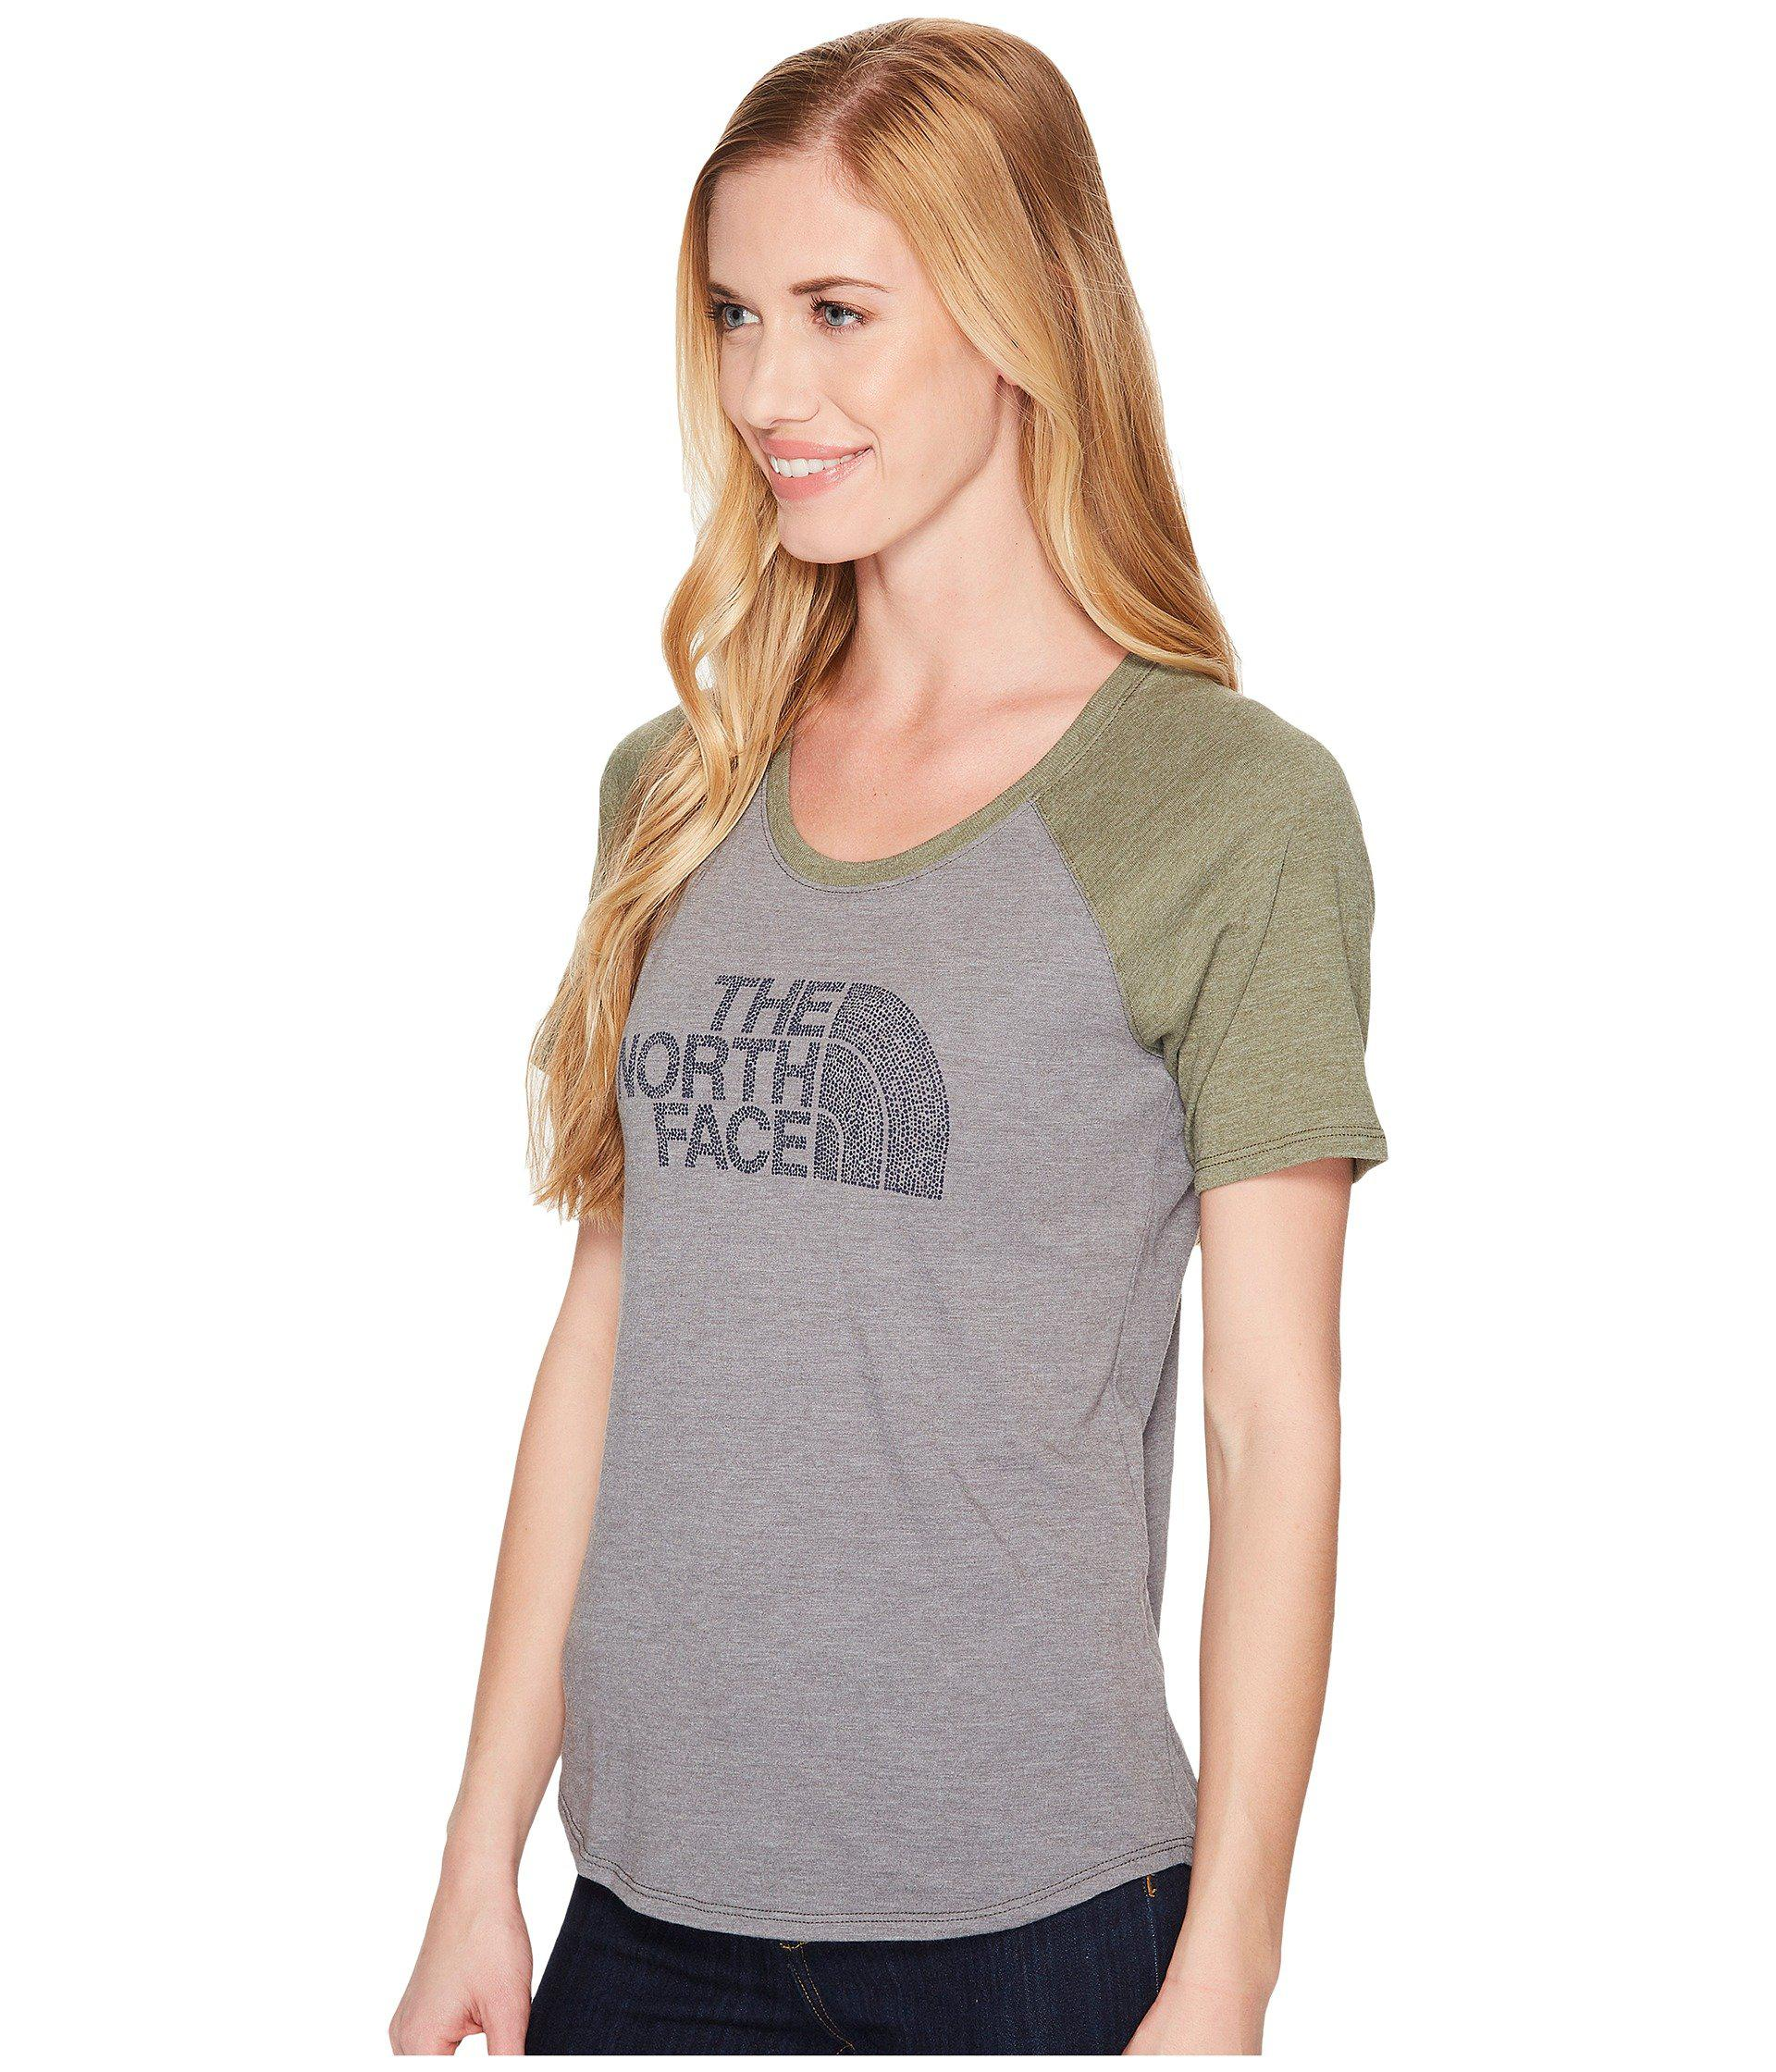 d71c287df3e68 The North Face Short Sleeve 1/2 Dome Graphic Tri-blend Baseball Tee ...